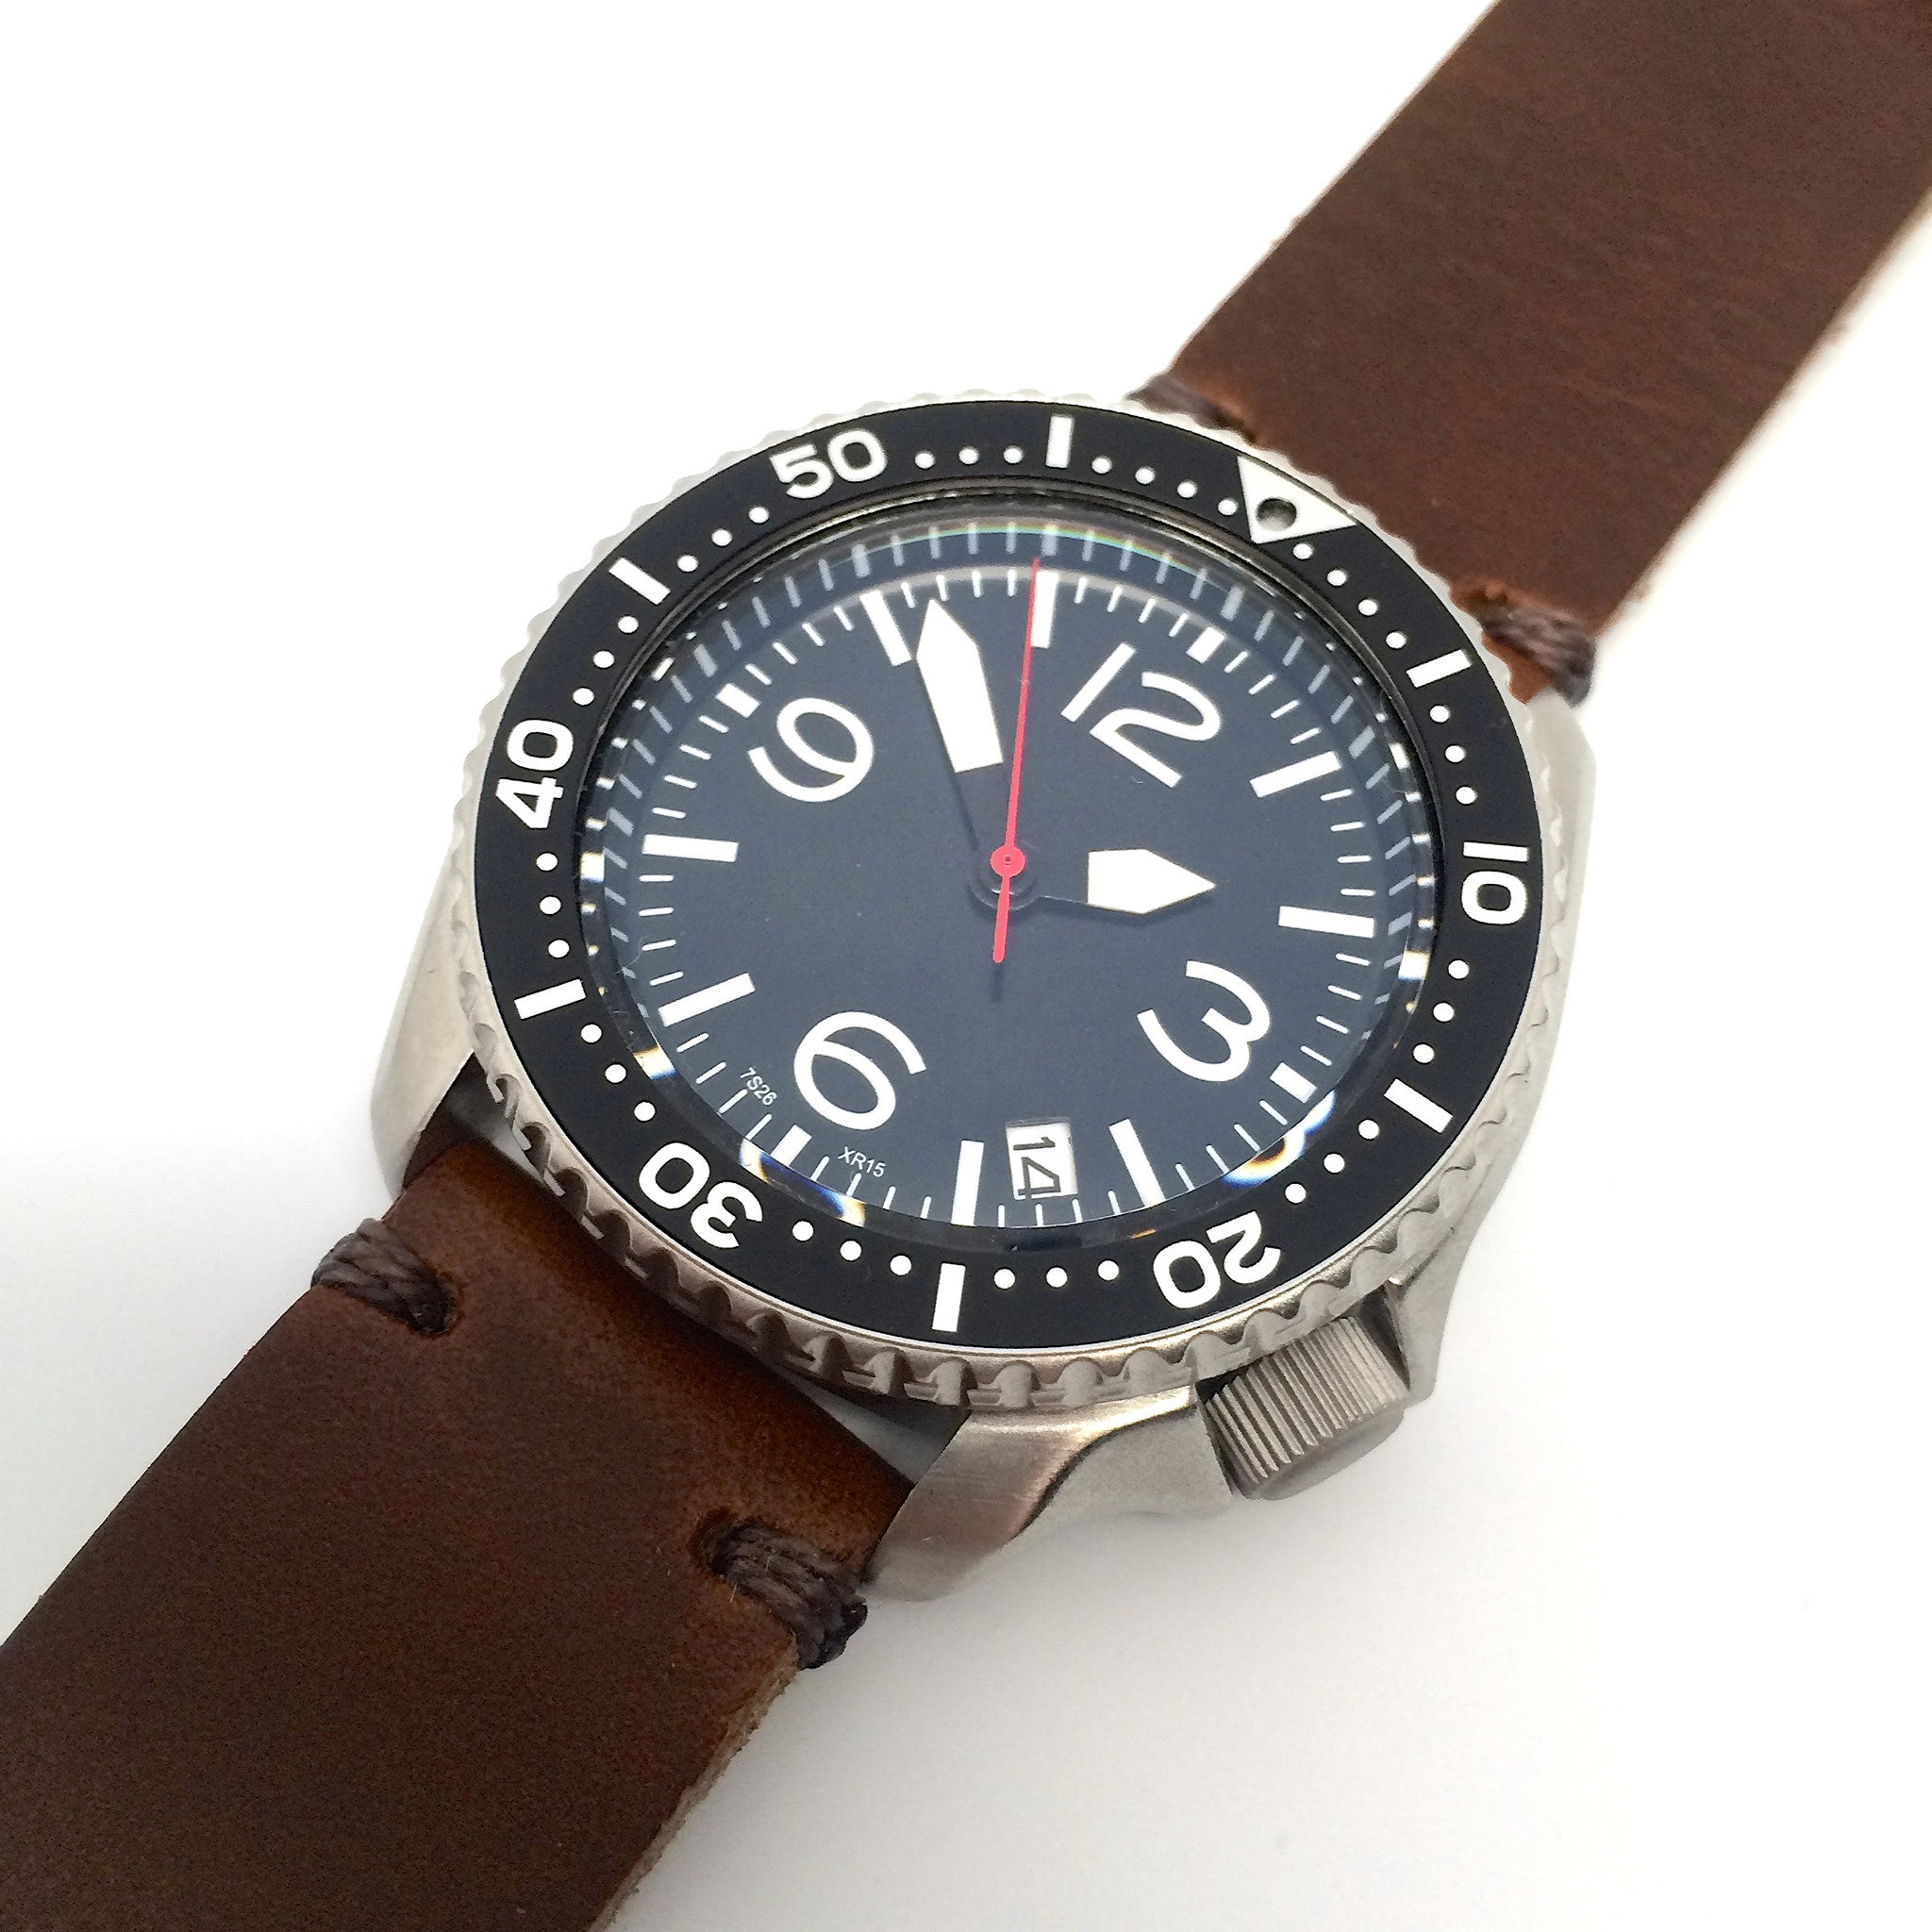 E3 Seiko Retro Mod 42mm Automatic Aviator Watch